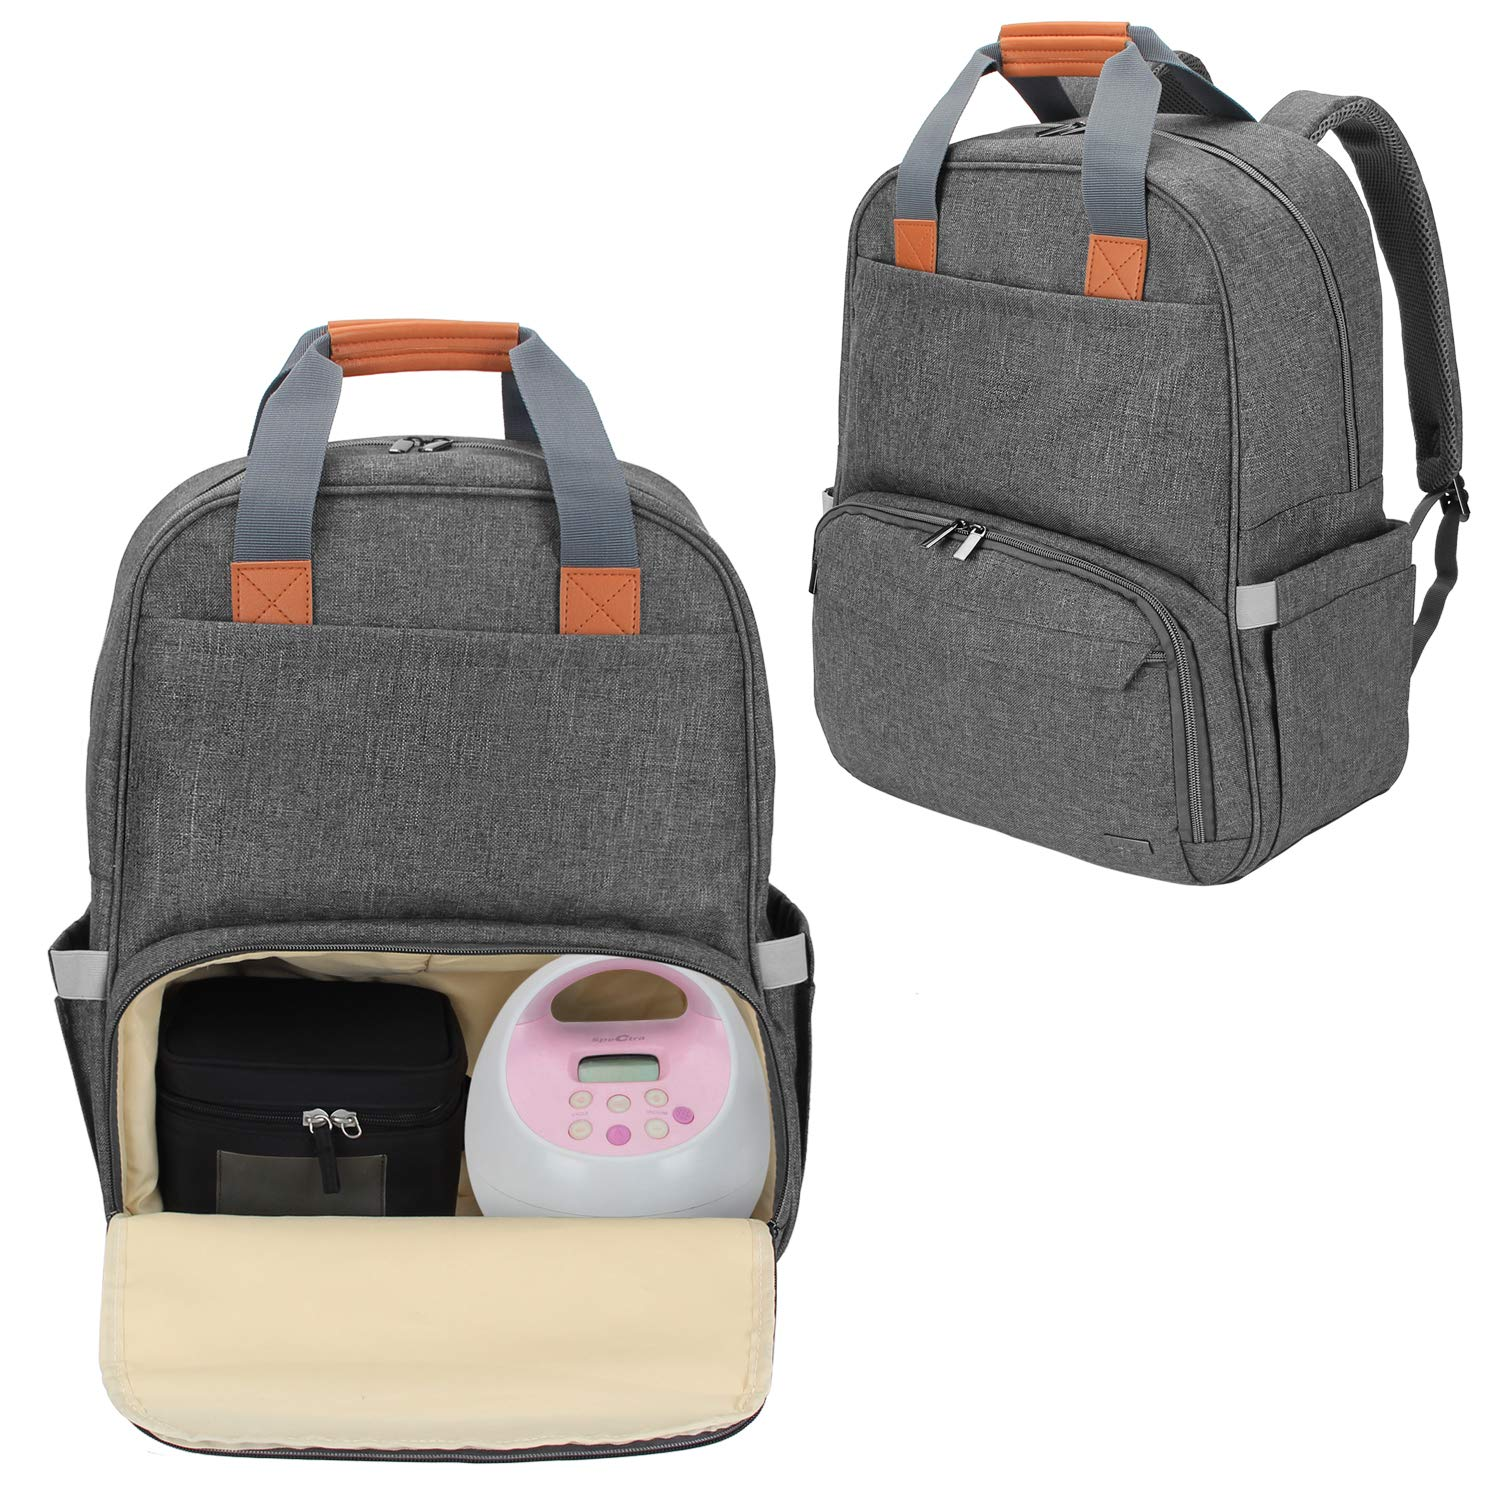 Luxja Breast Pump Backpack with Compartments for Cooler Bag and Laptop, Breast Pump Bag Suitable for Working Mothers (Fits Most Major Breast Pump), Gray